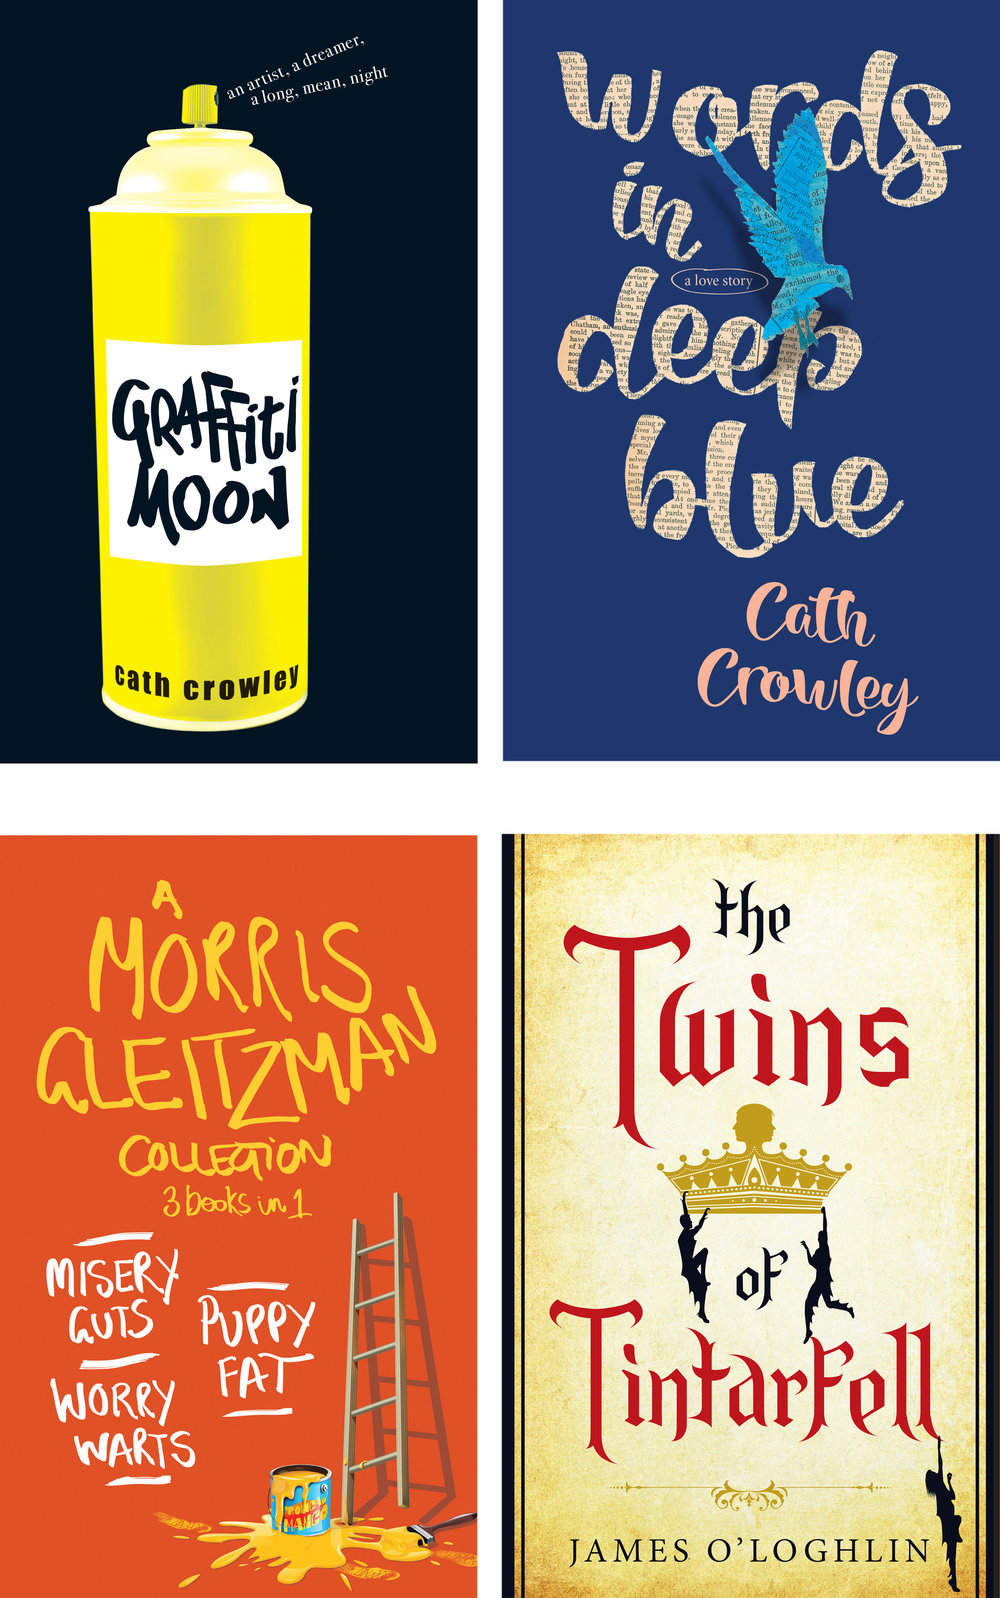 client Pan Macmillan Australia  projects Graffiti Moon by Cath Crowley | Words in Deep Blue by Cath Crowley | A Morris Gleitzman Collection | The Twins of Tintarfell by James O'Loghlin